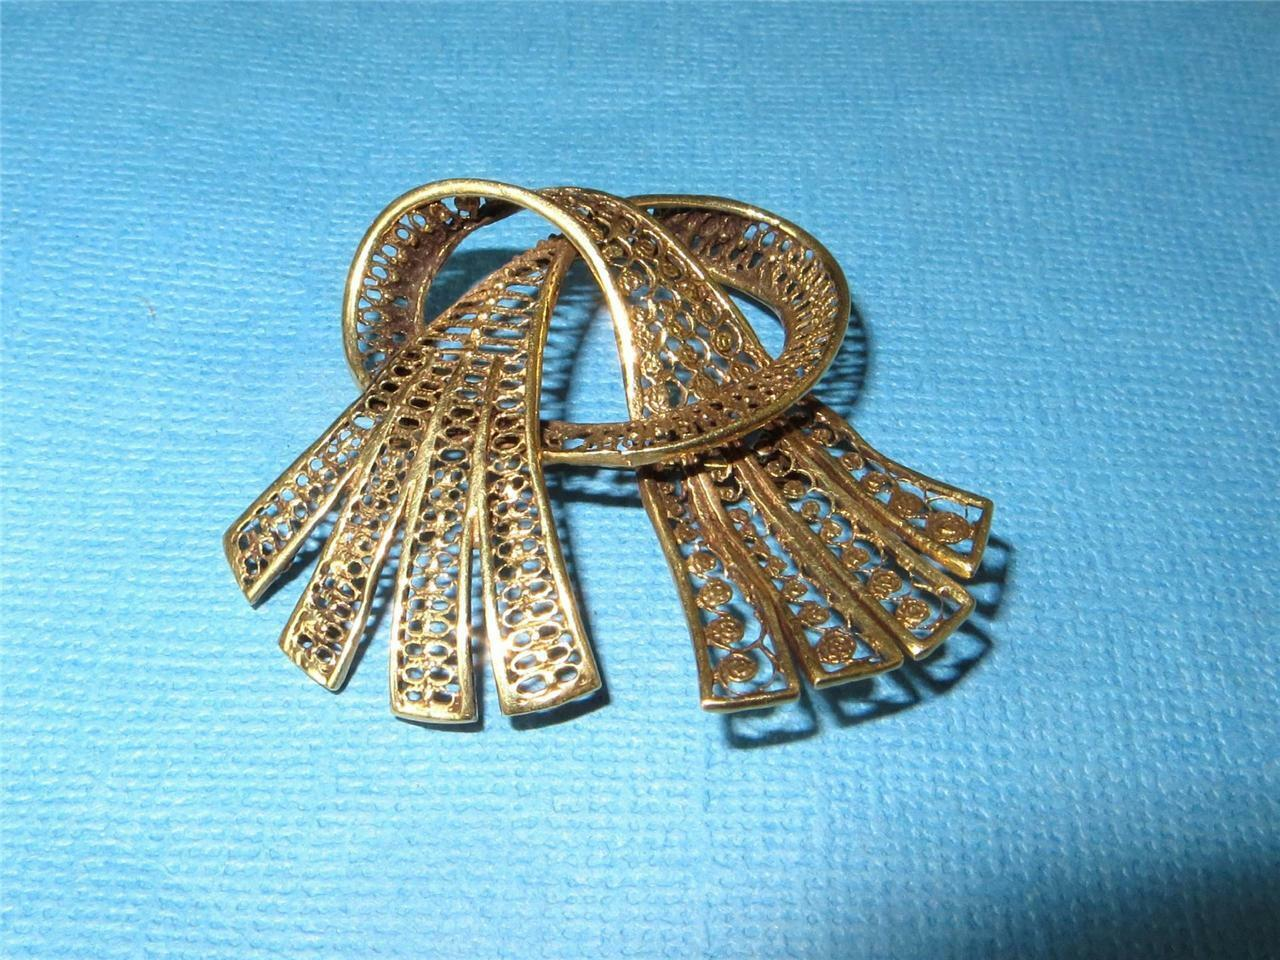 Vintage 14K gold Knotted Ribbon Fan Brooch Pin Cannetille Detail 6.2 grams c1920